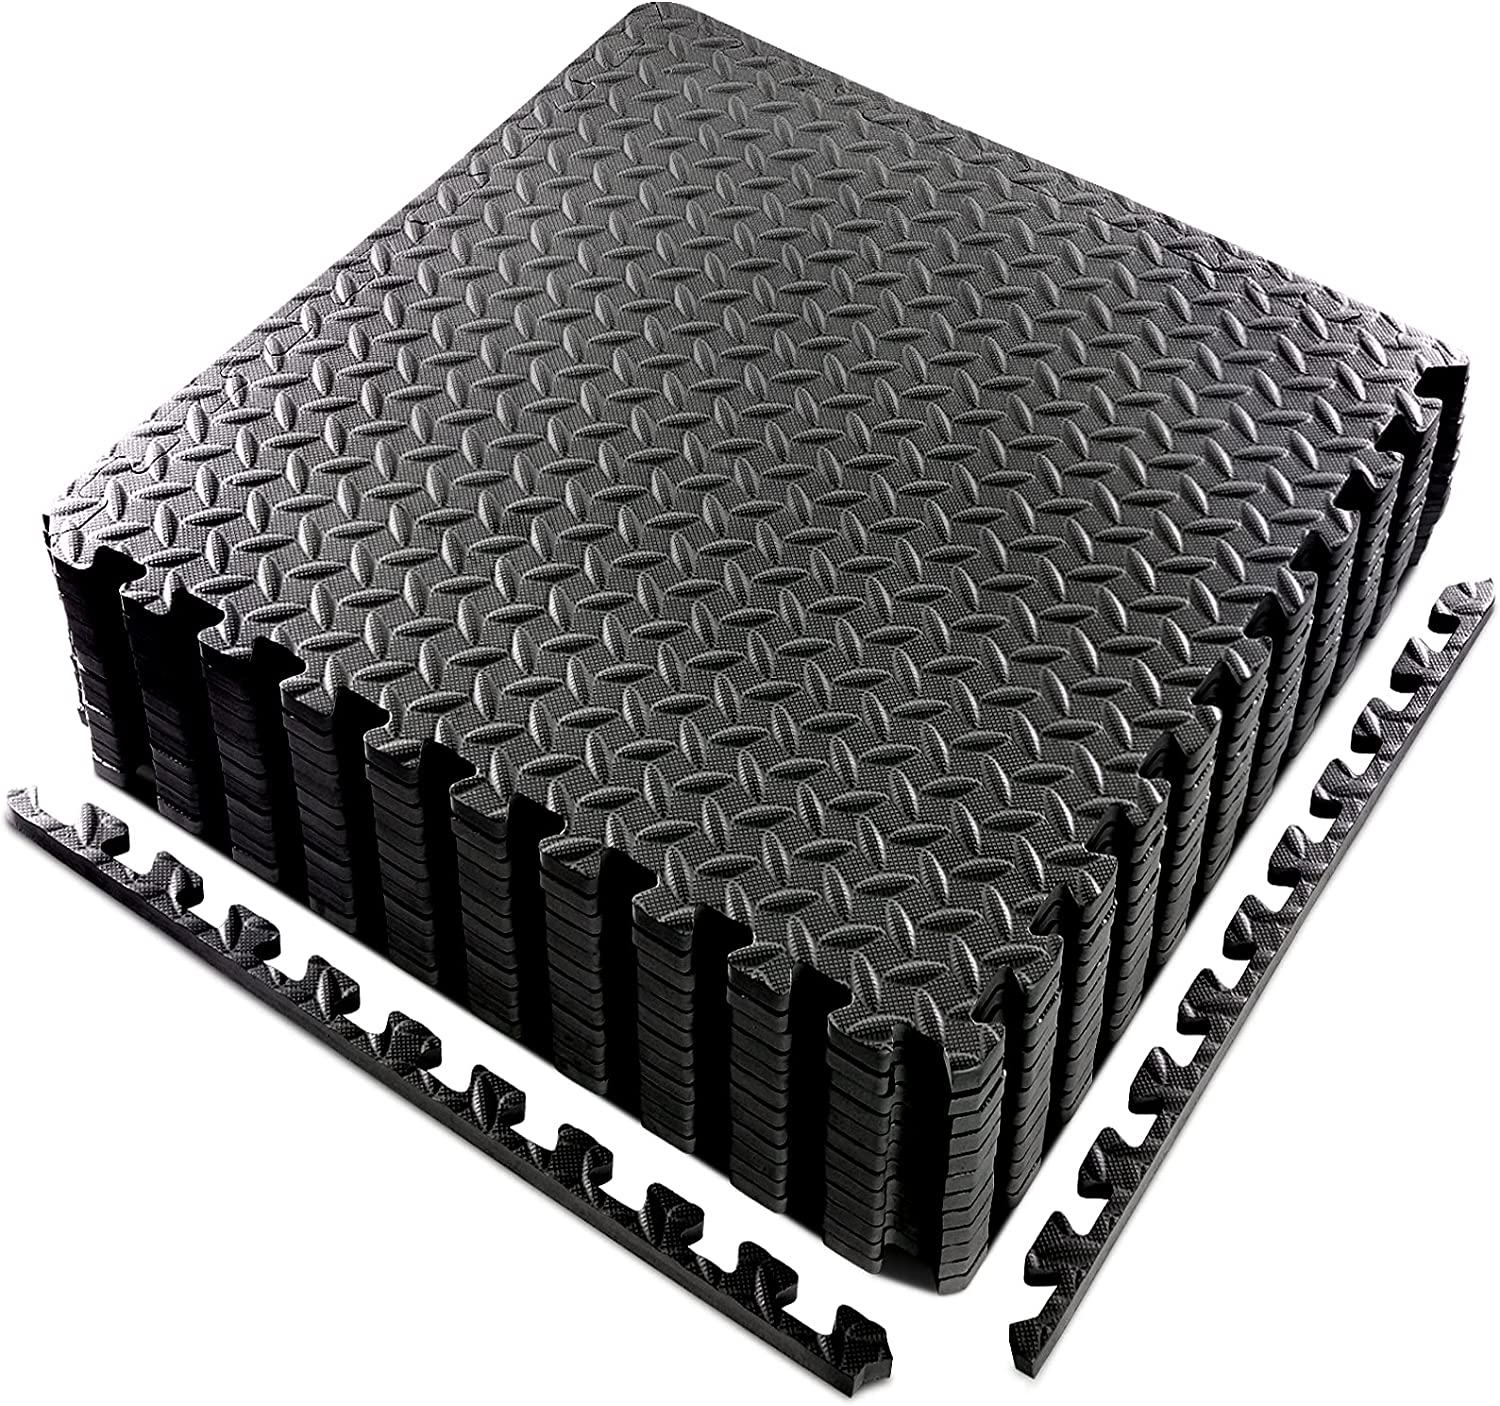 Puzzle Exercise Mat,Foam Interlocking Exercise Gym Floor Mat Tiles, 24 x 24 Inches EVA Foam Interlocking Tiles for Protective, Cushioned Workout Flooring for Home and Gym Equipment (6Pcs/12Pcs)